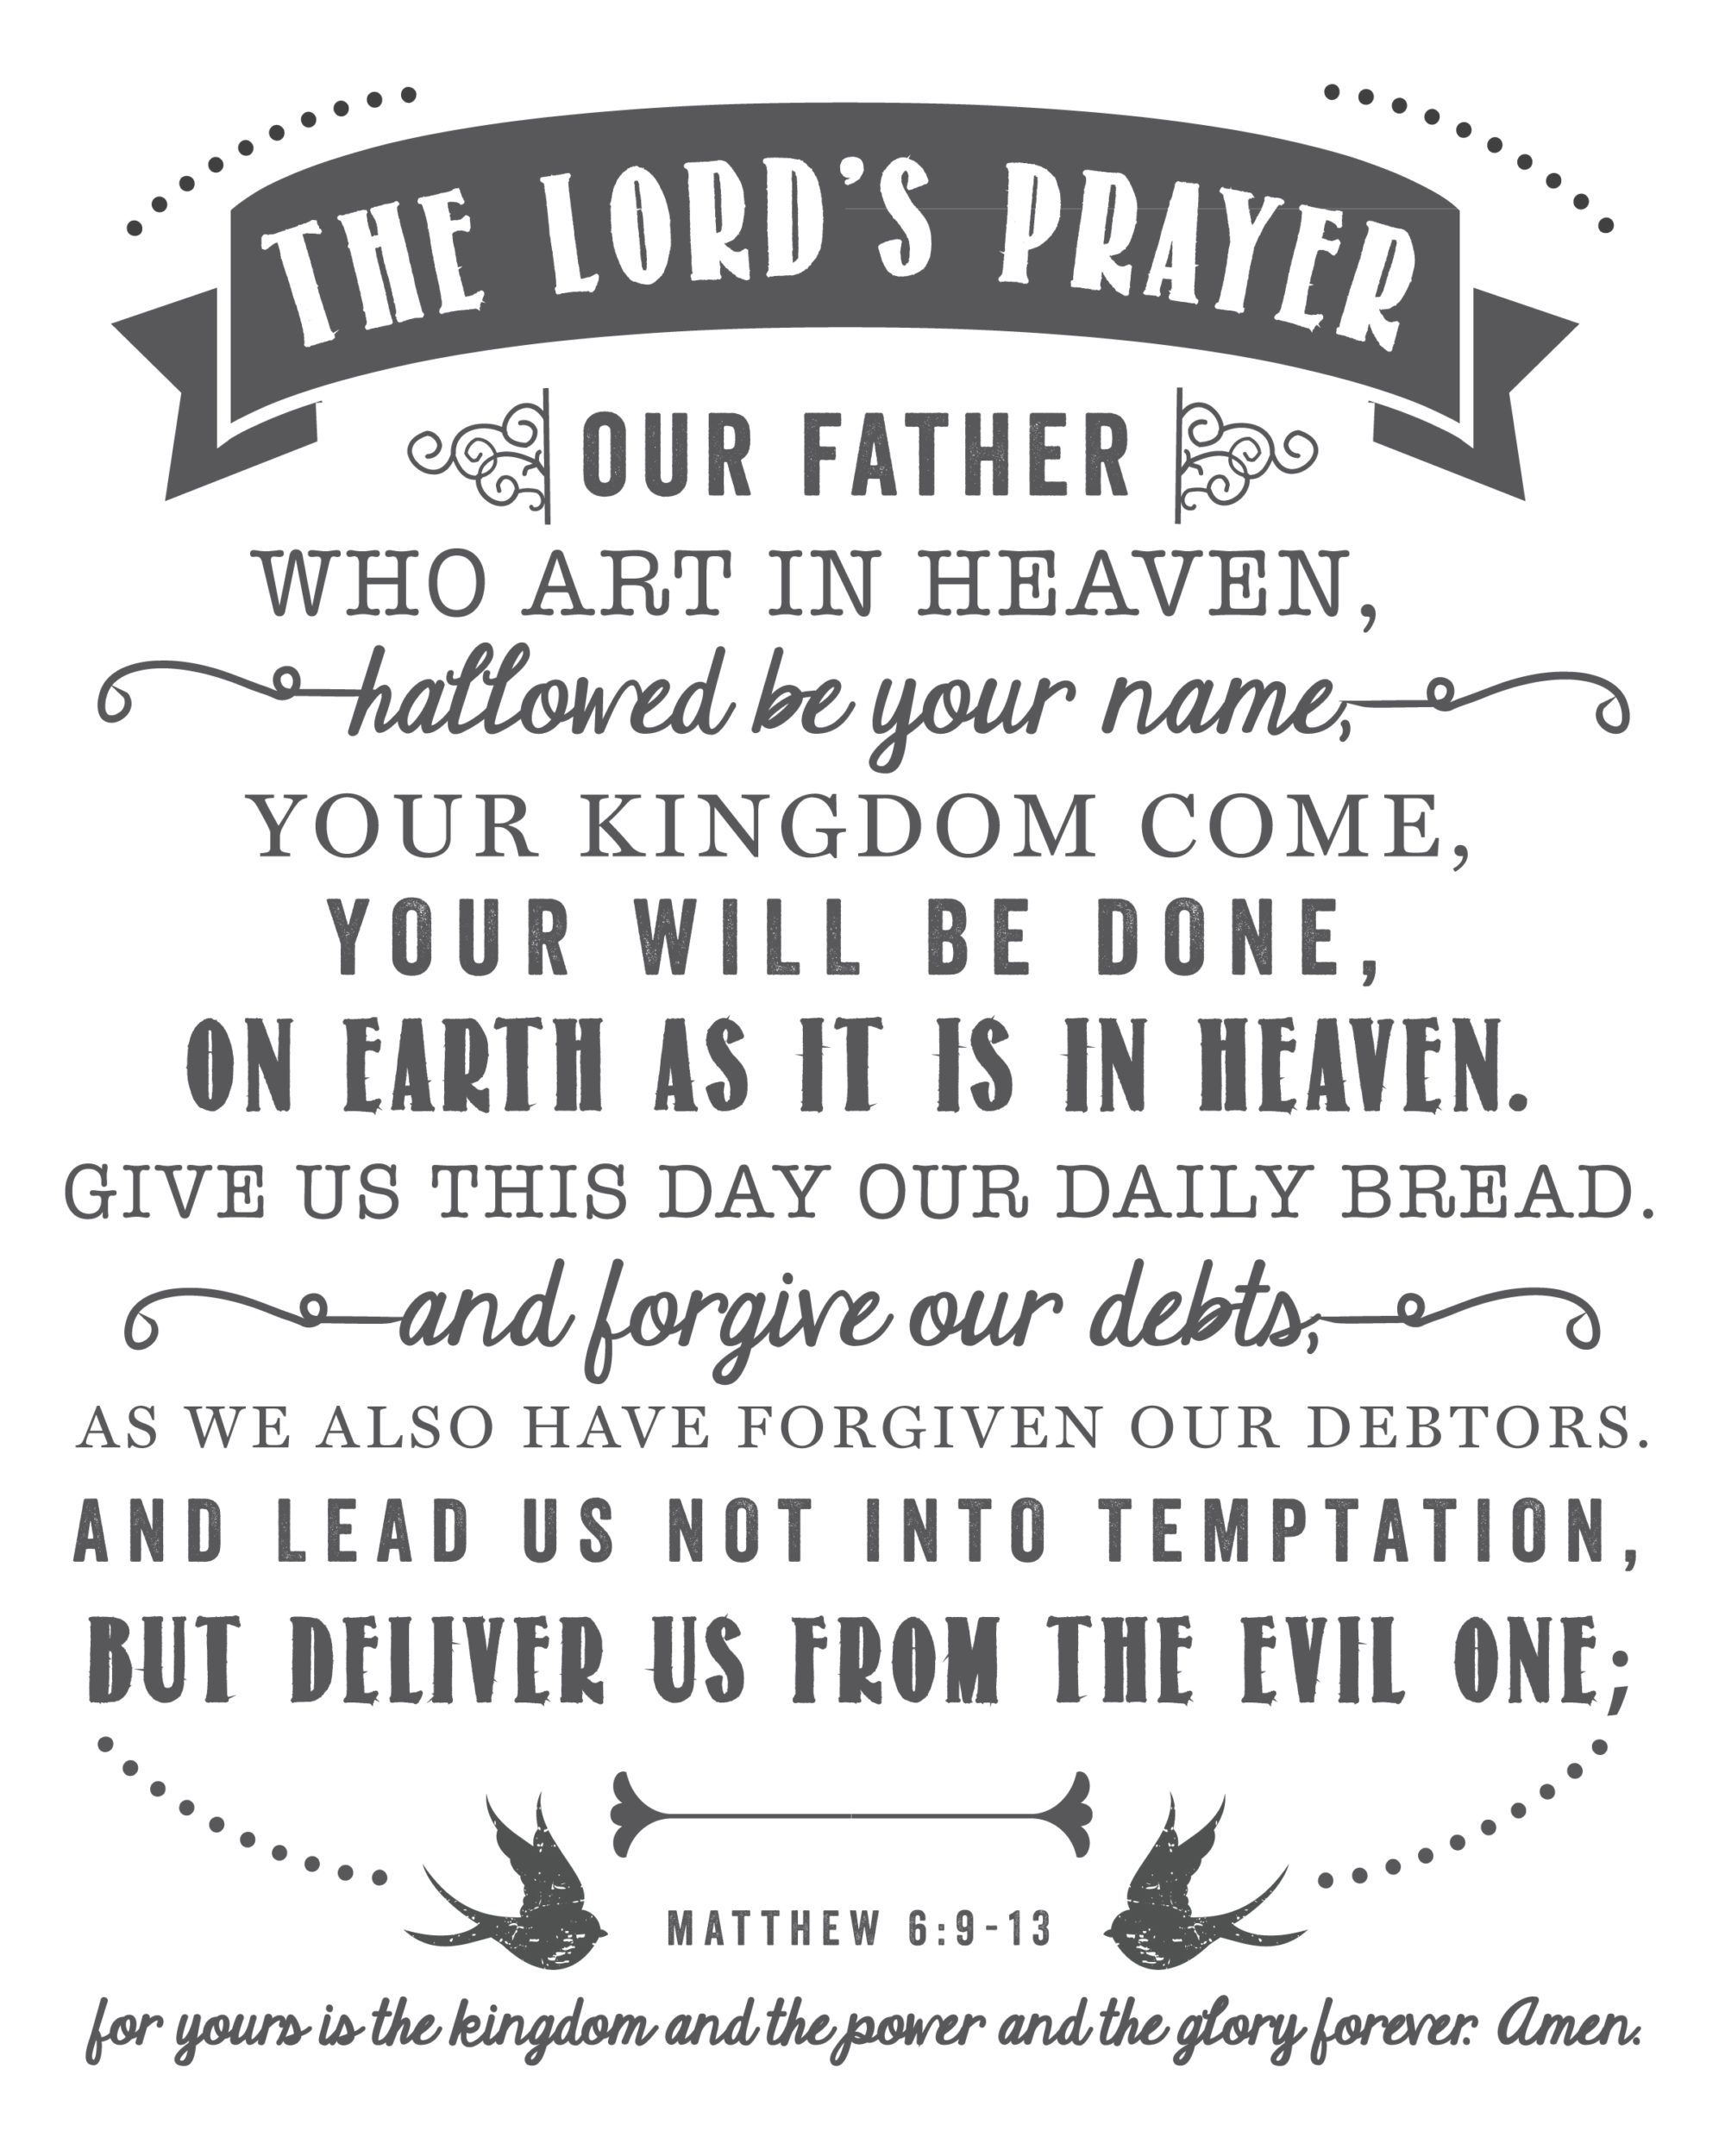 The Lordu0026#39;s Prayer : Free Printable : Sincerely, Sara D.